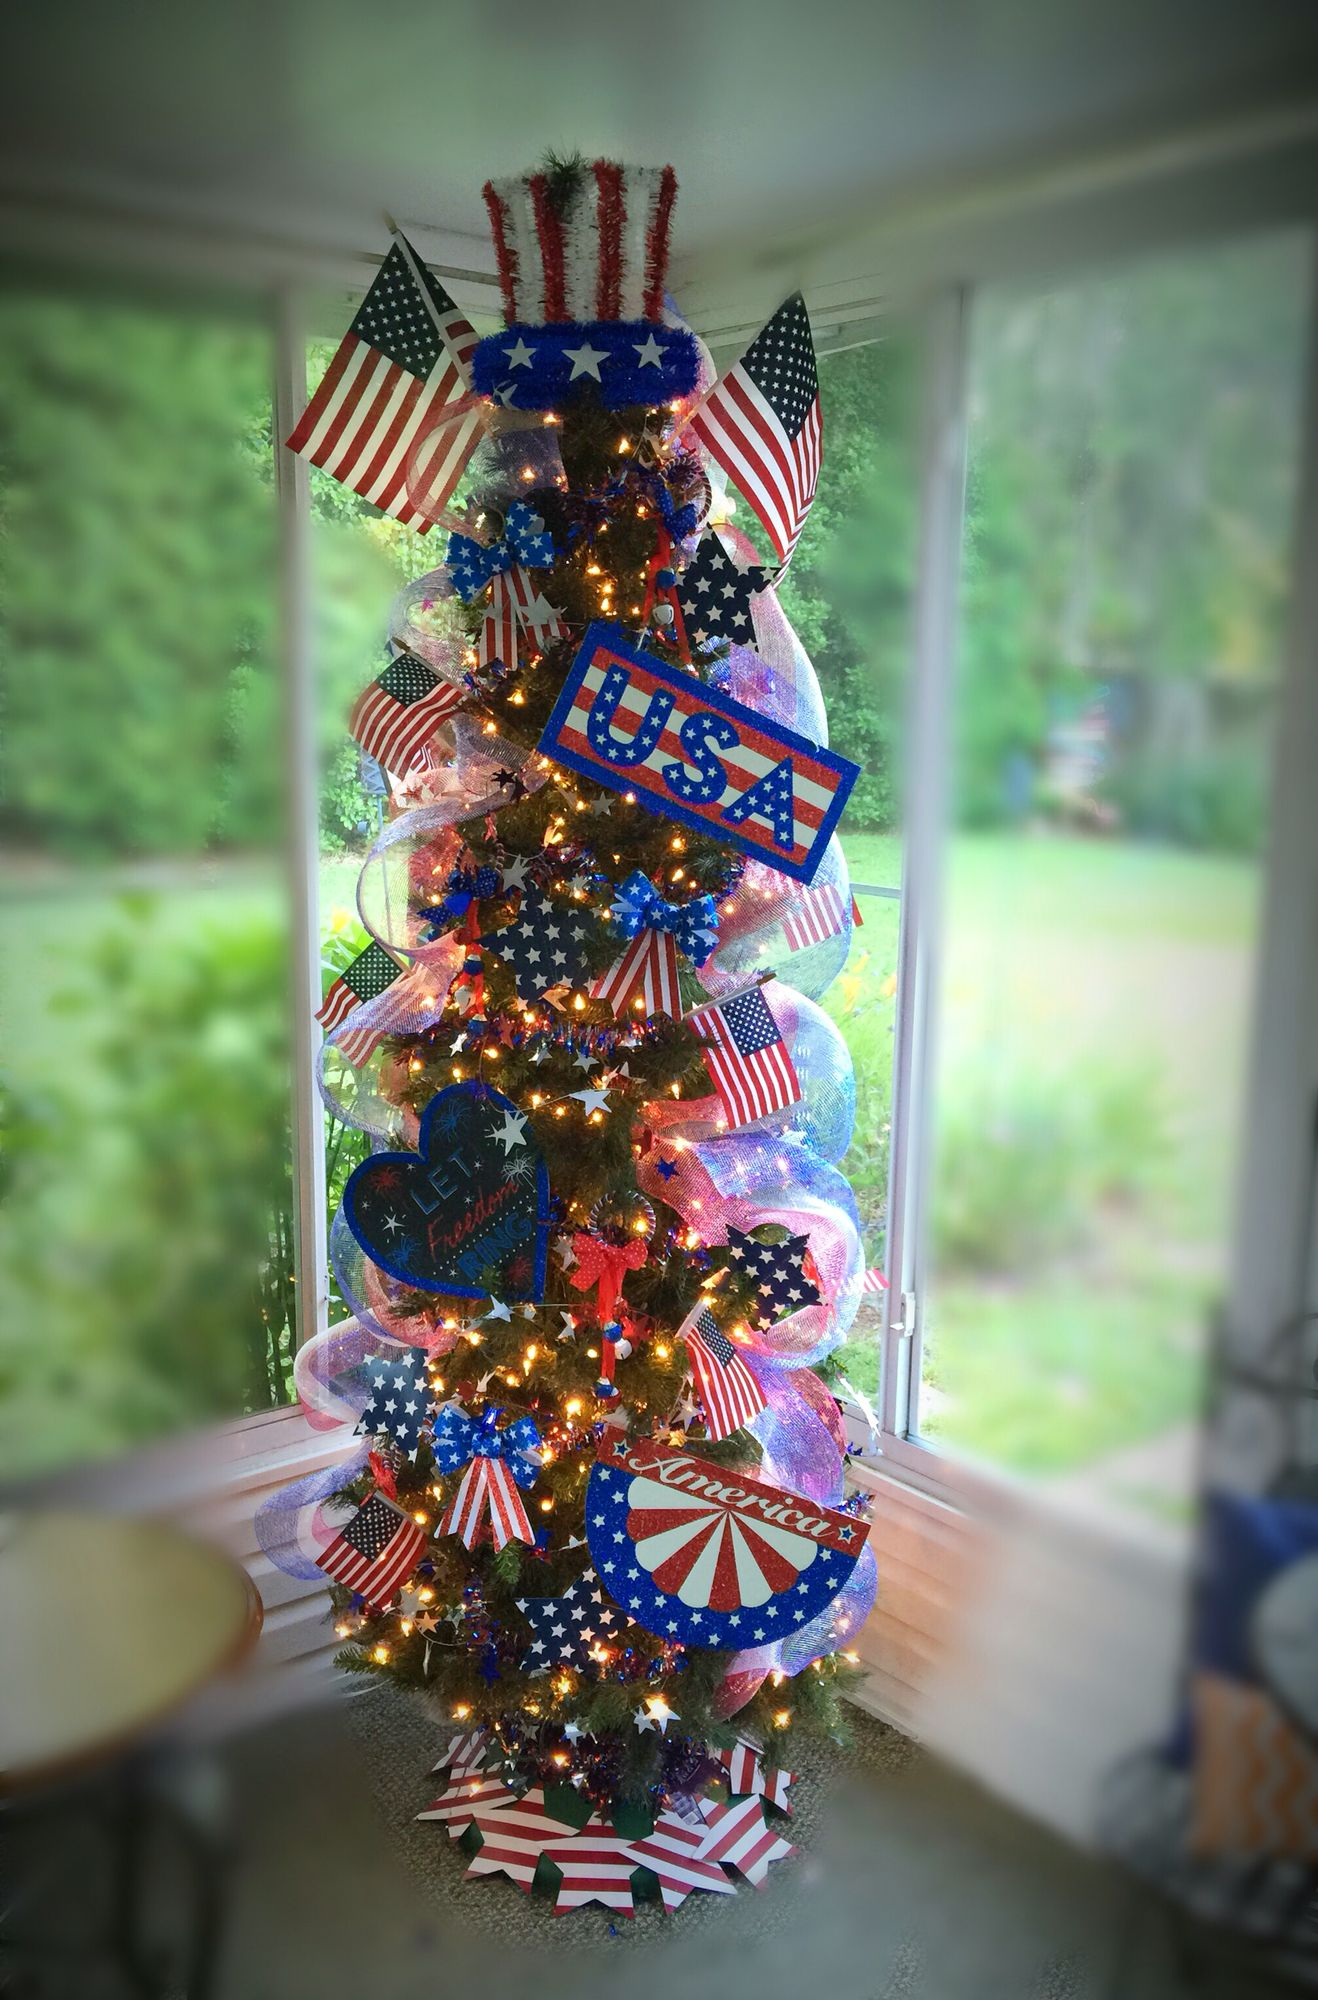 Memorial Day Tree 4th Of July Tree Patriotic Tree Usa Memorial Day Decorations Labor Day Decorations Patriotic Christmas Tree